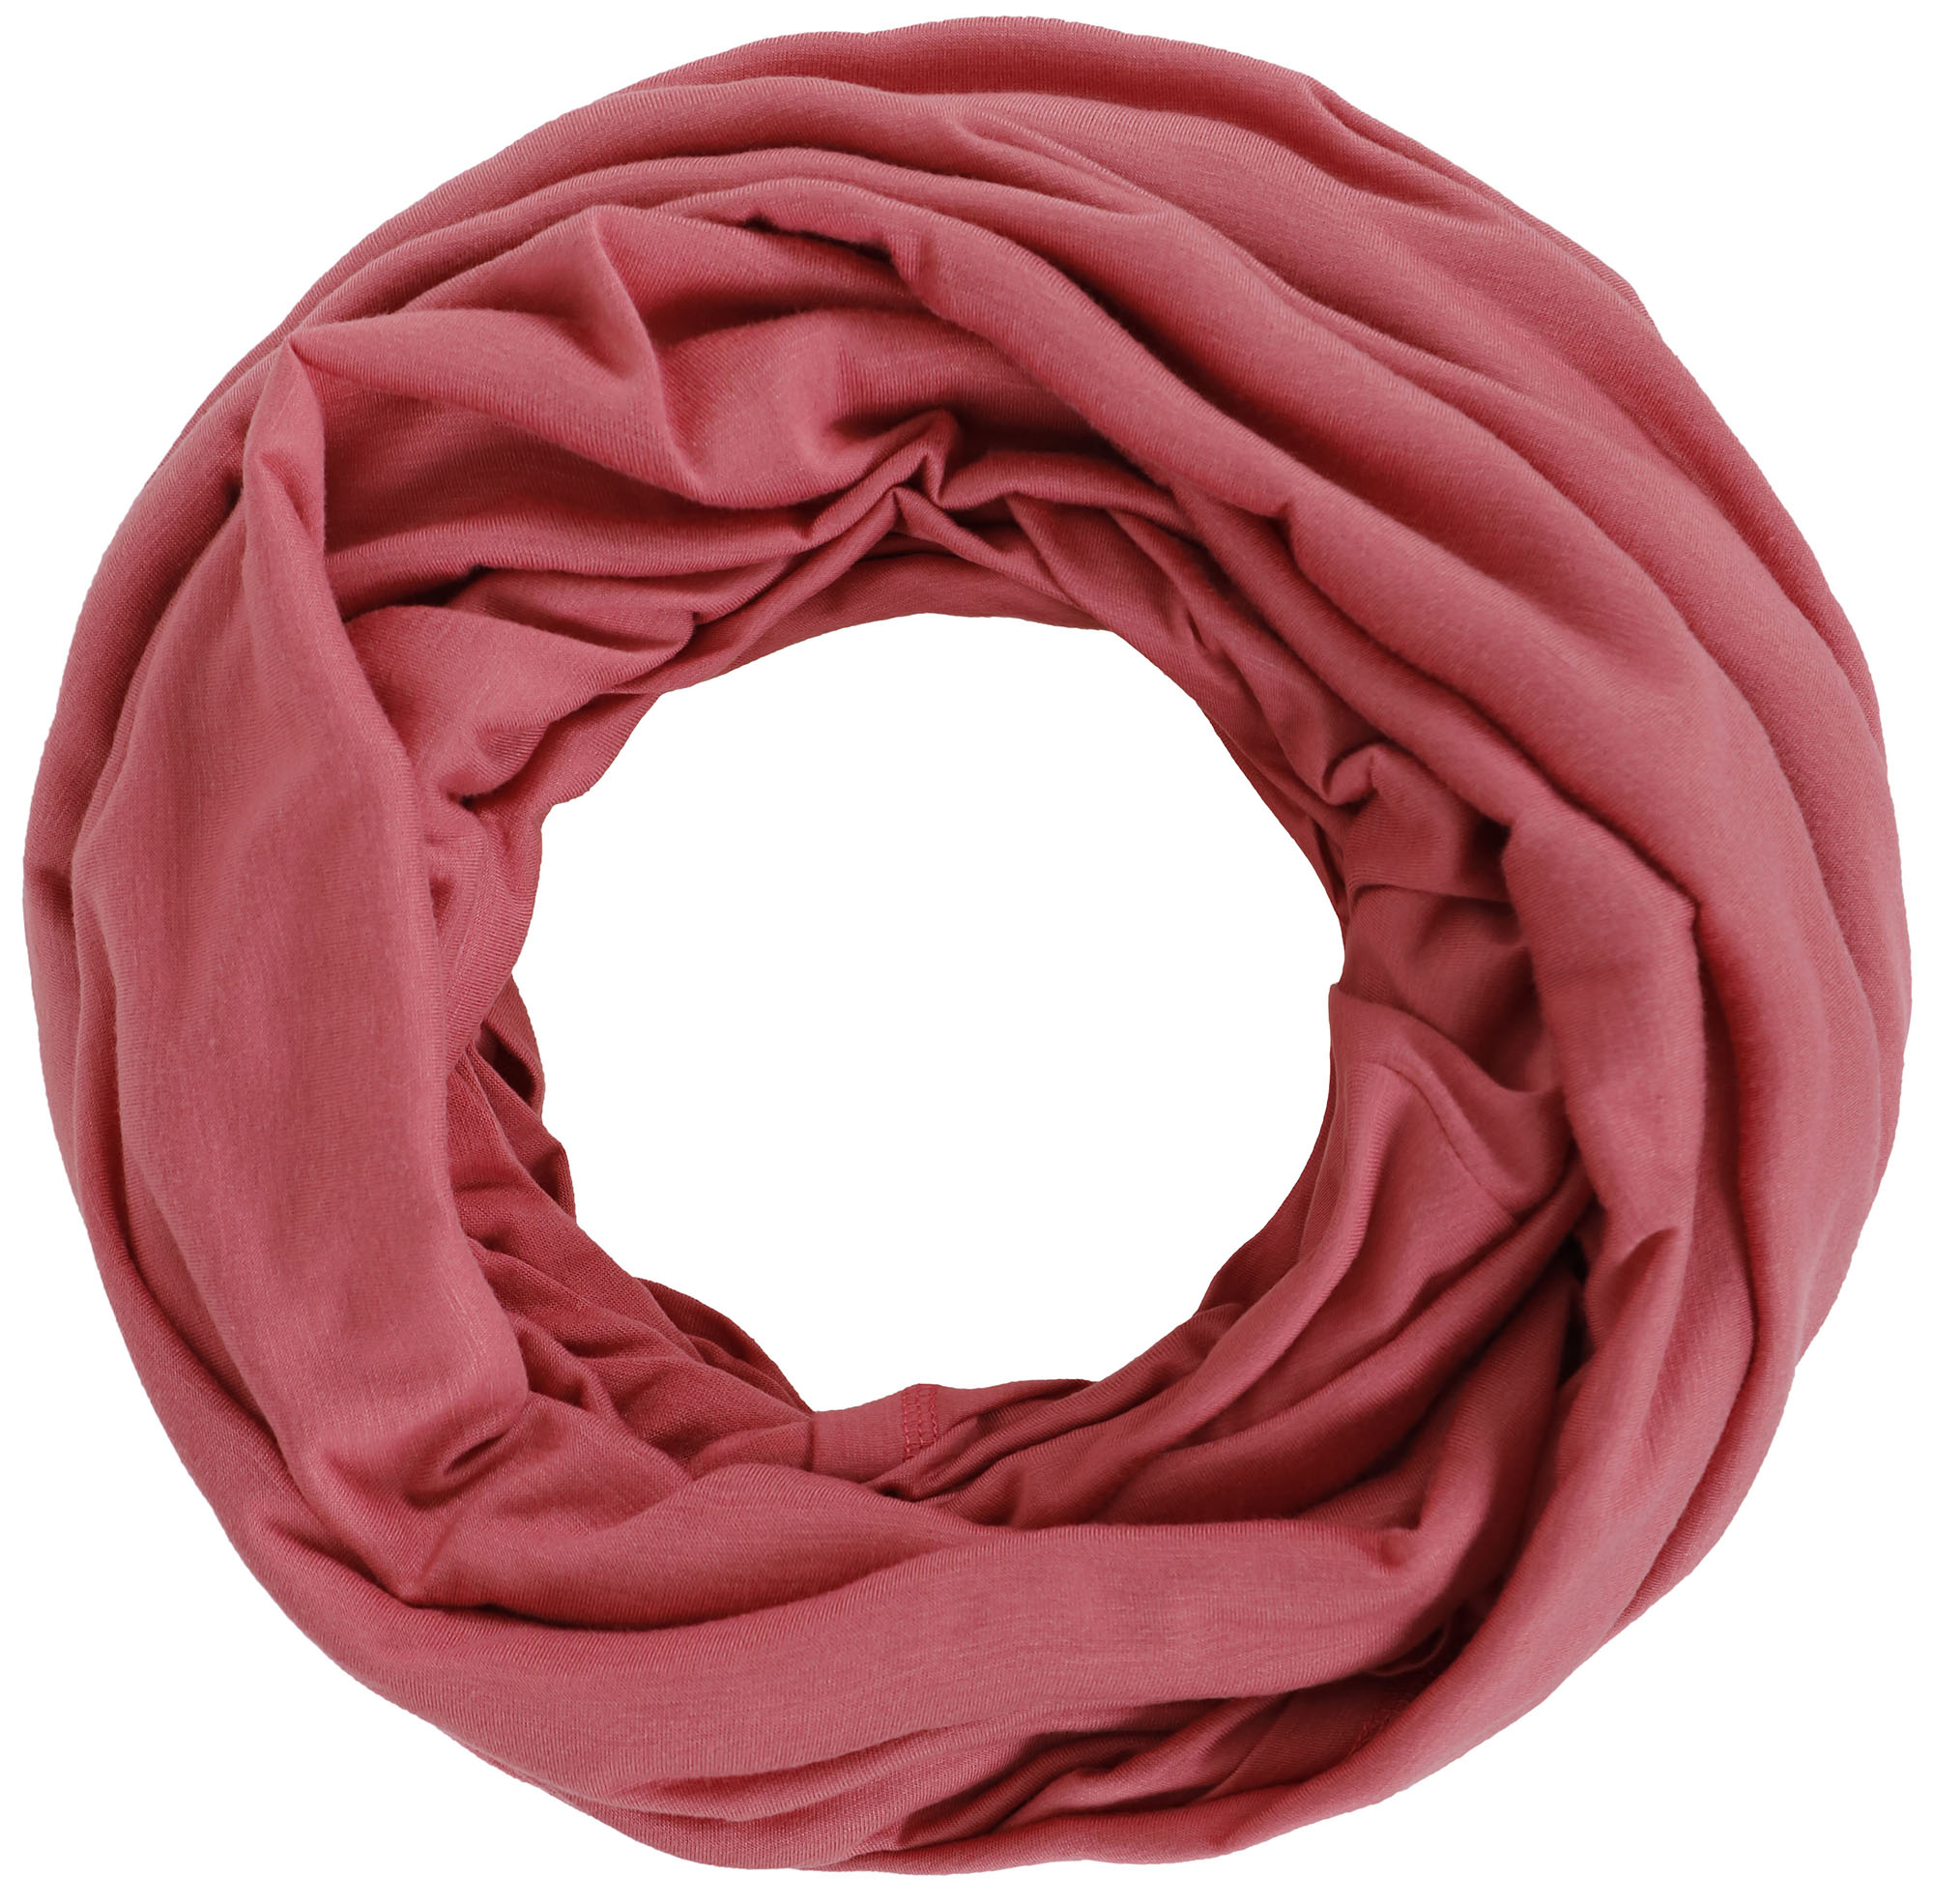 Simplicity Organic Baby 100% Cotton Nursing Scarf & Breastfeeding Cover,red